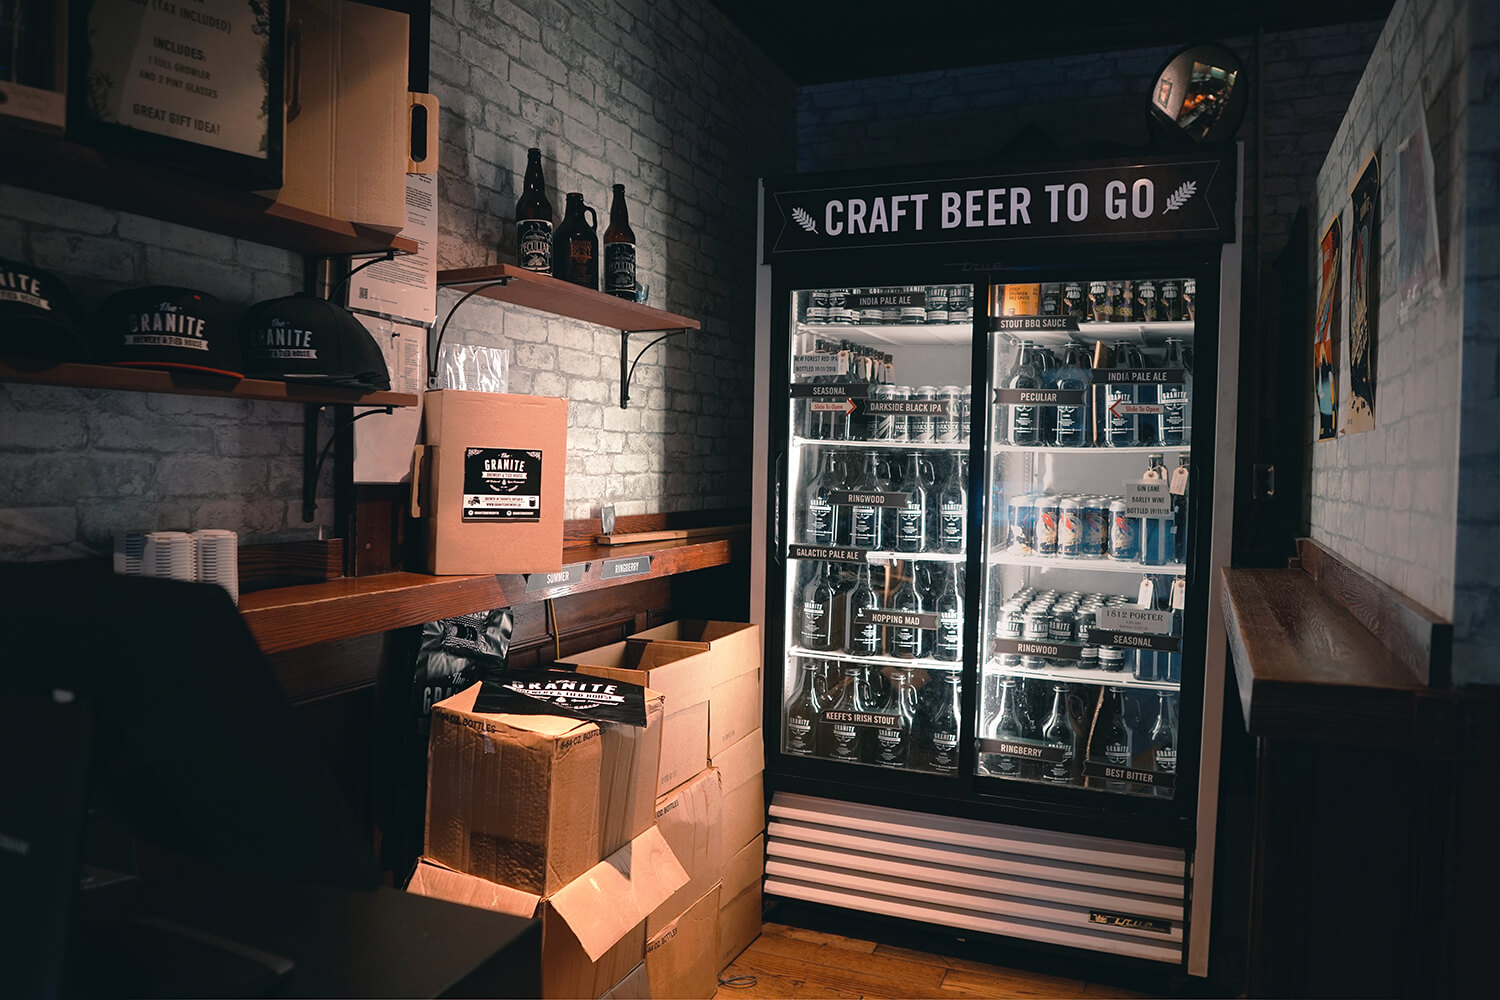 https://www.granitebrewery.ca/wp-content/uploads/2019/09/Full-Fridge-optimized.jpg